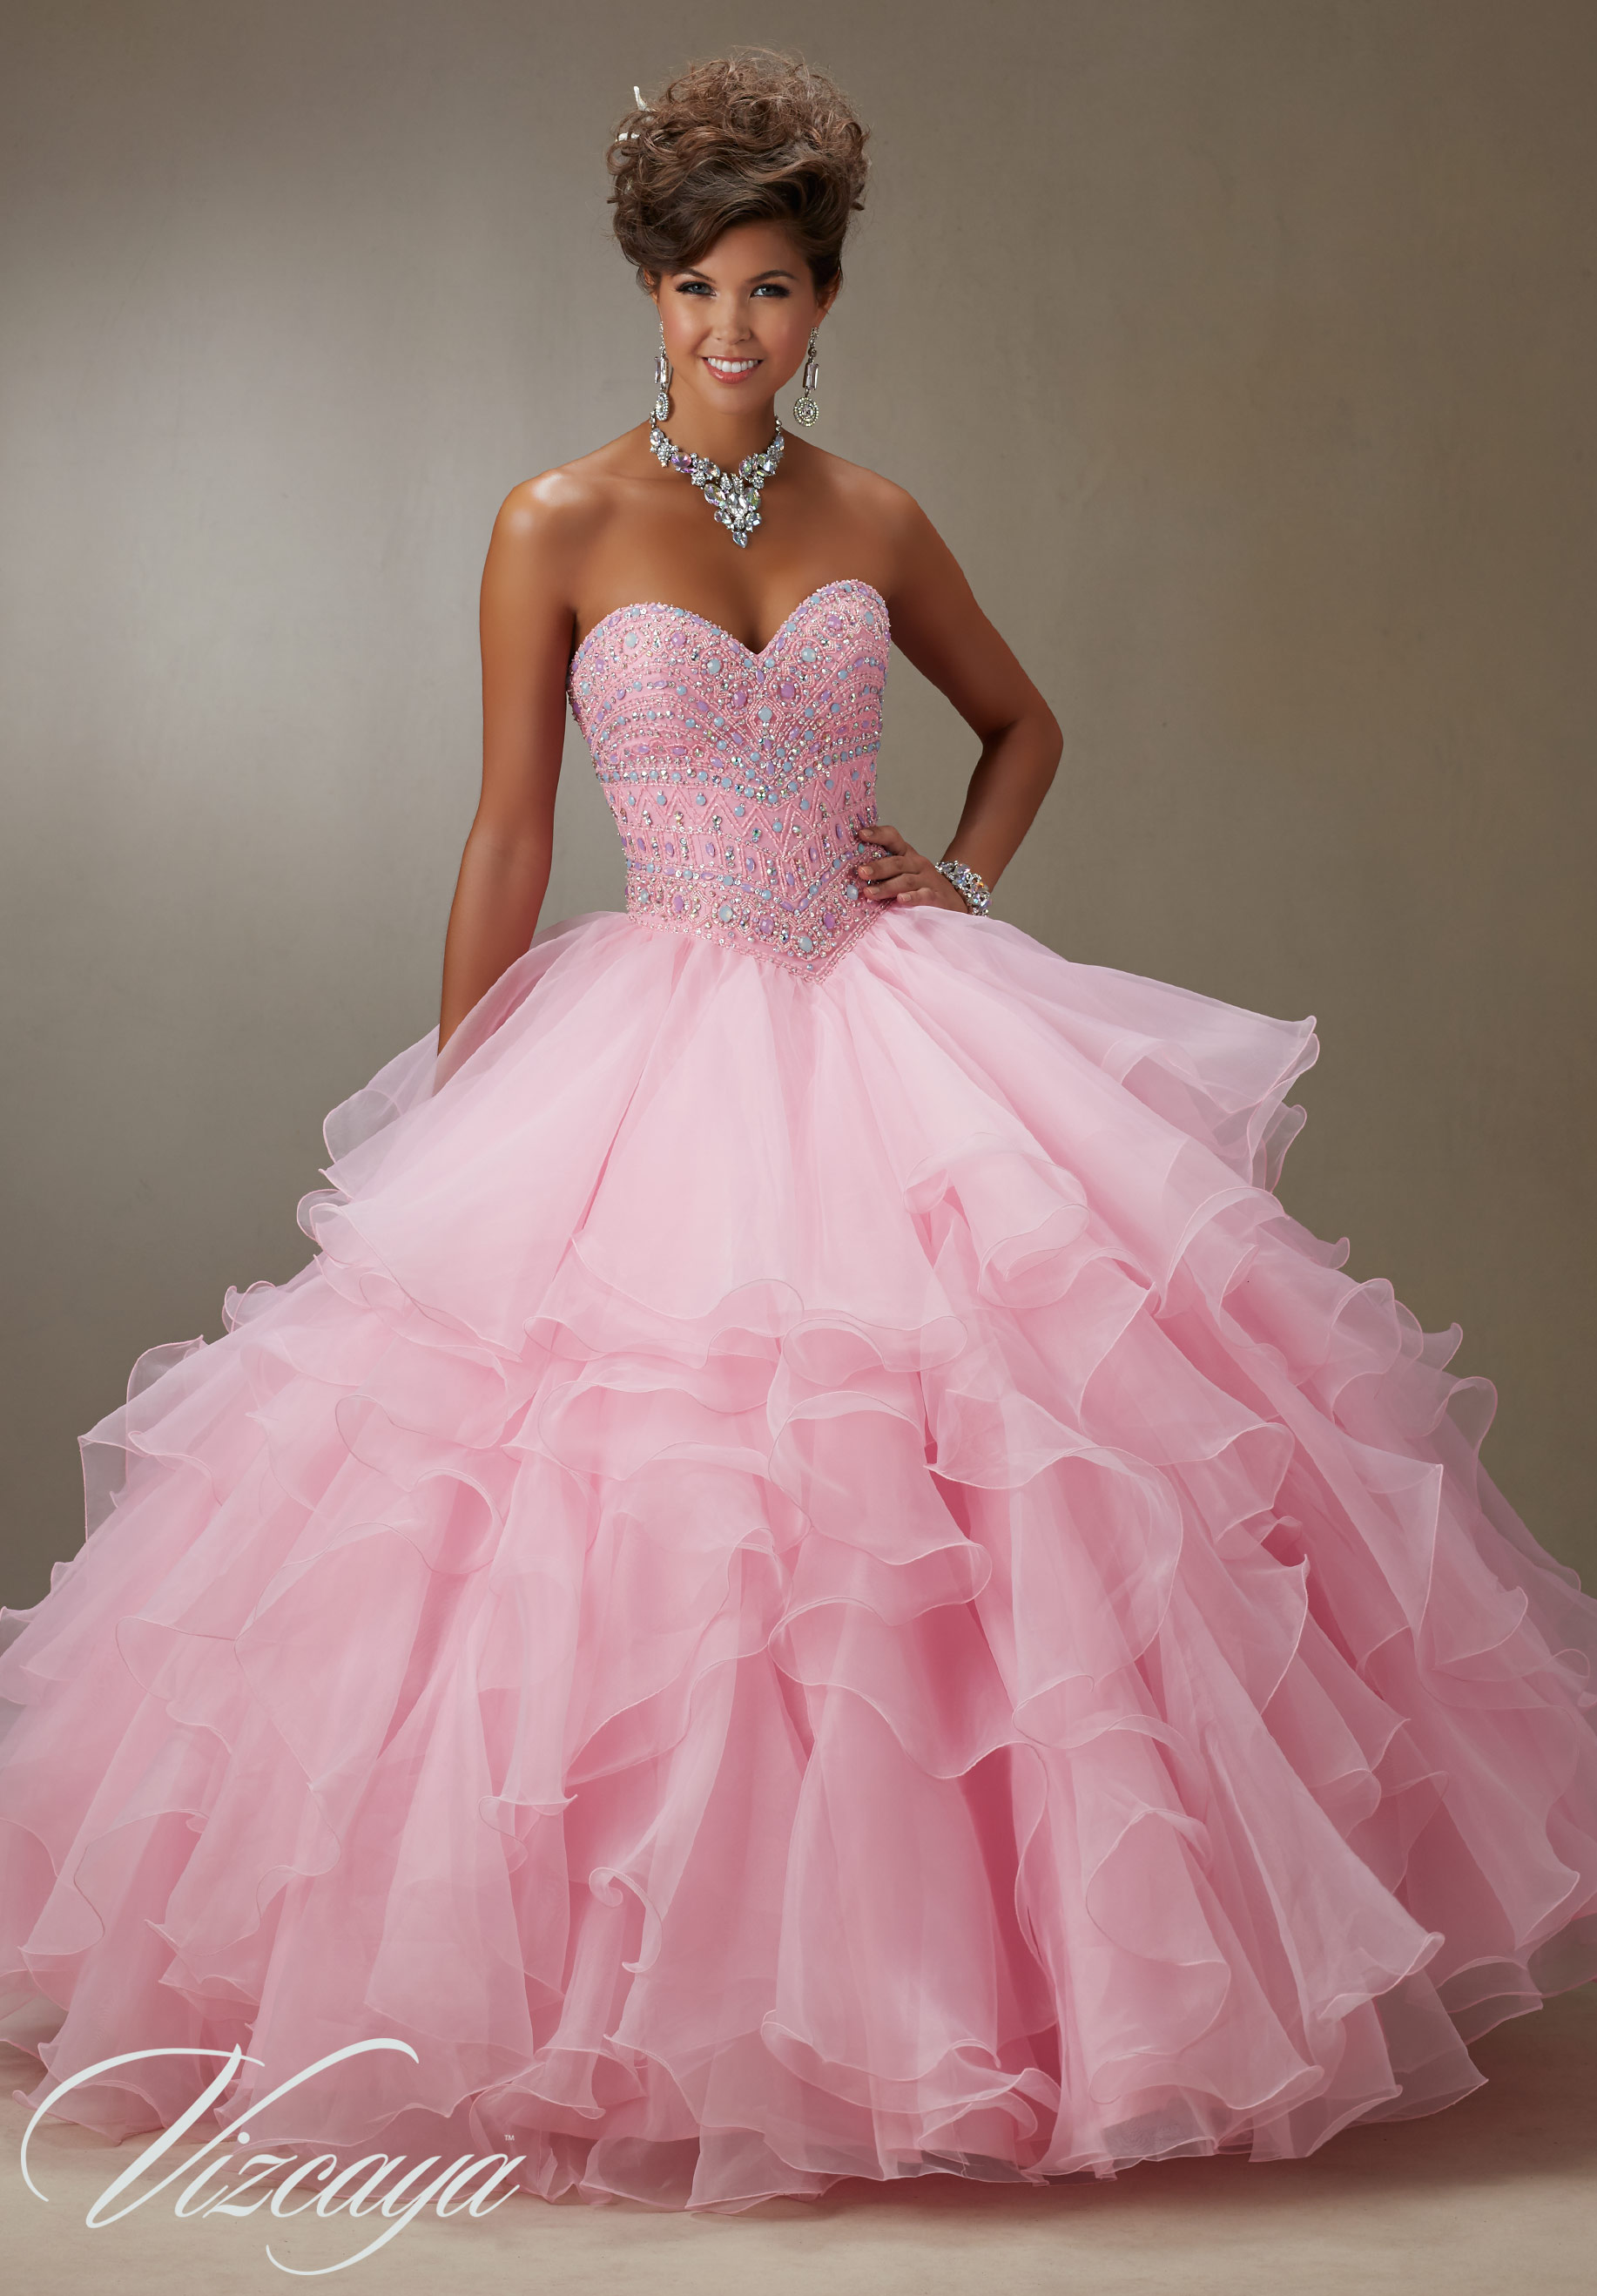 576b97e56 Quinceañera Dresses – Celebrations de todo